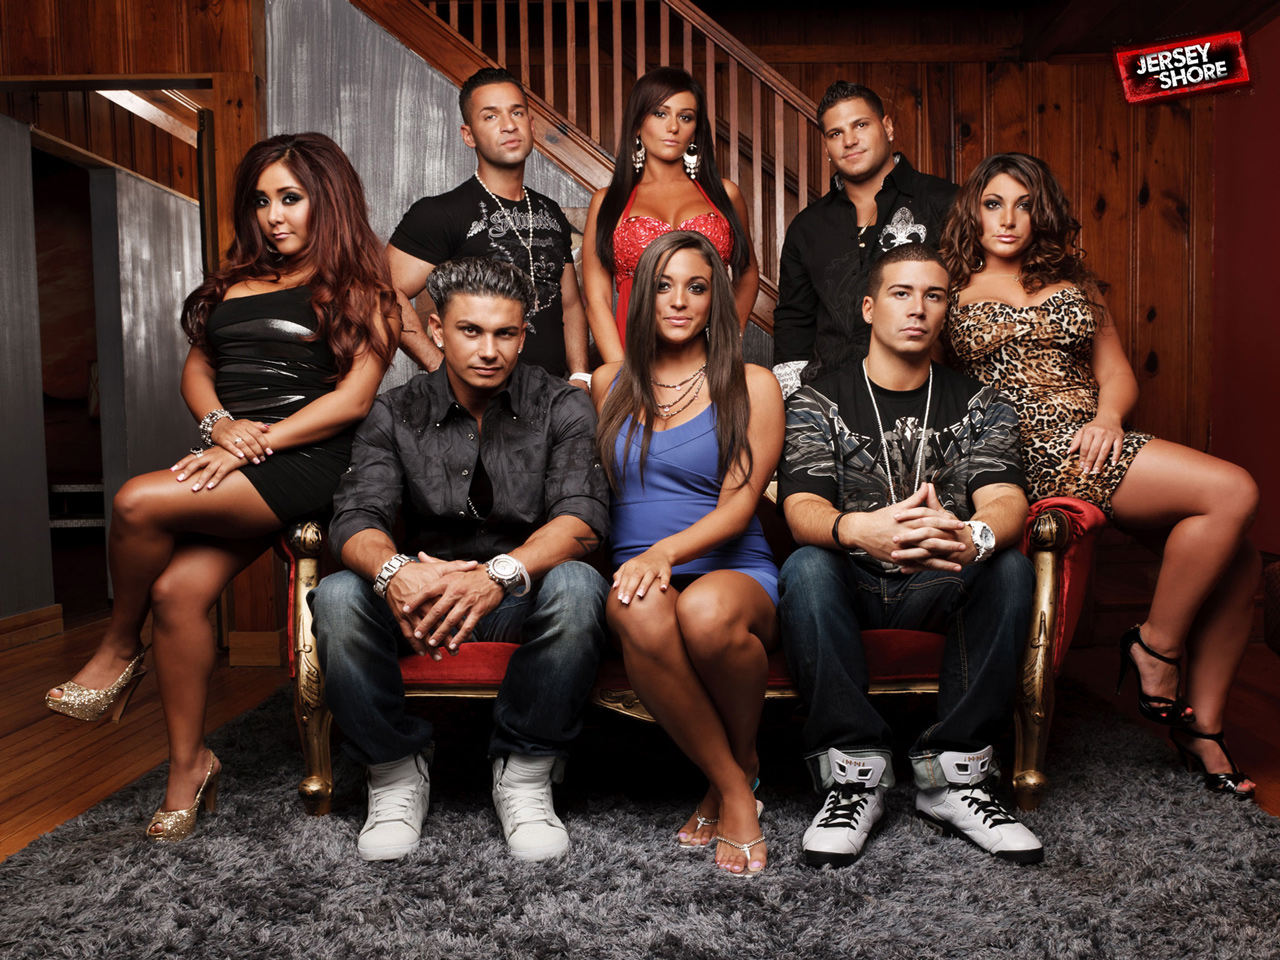 Love it or hate it, MTV's Jersey Shore knows social media